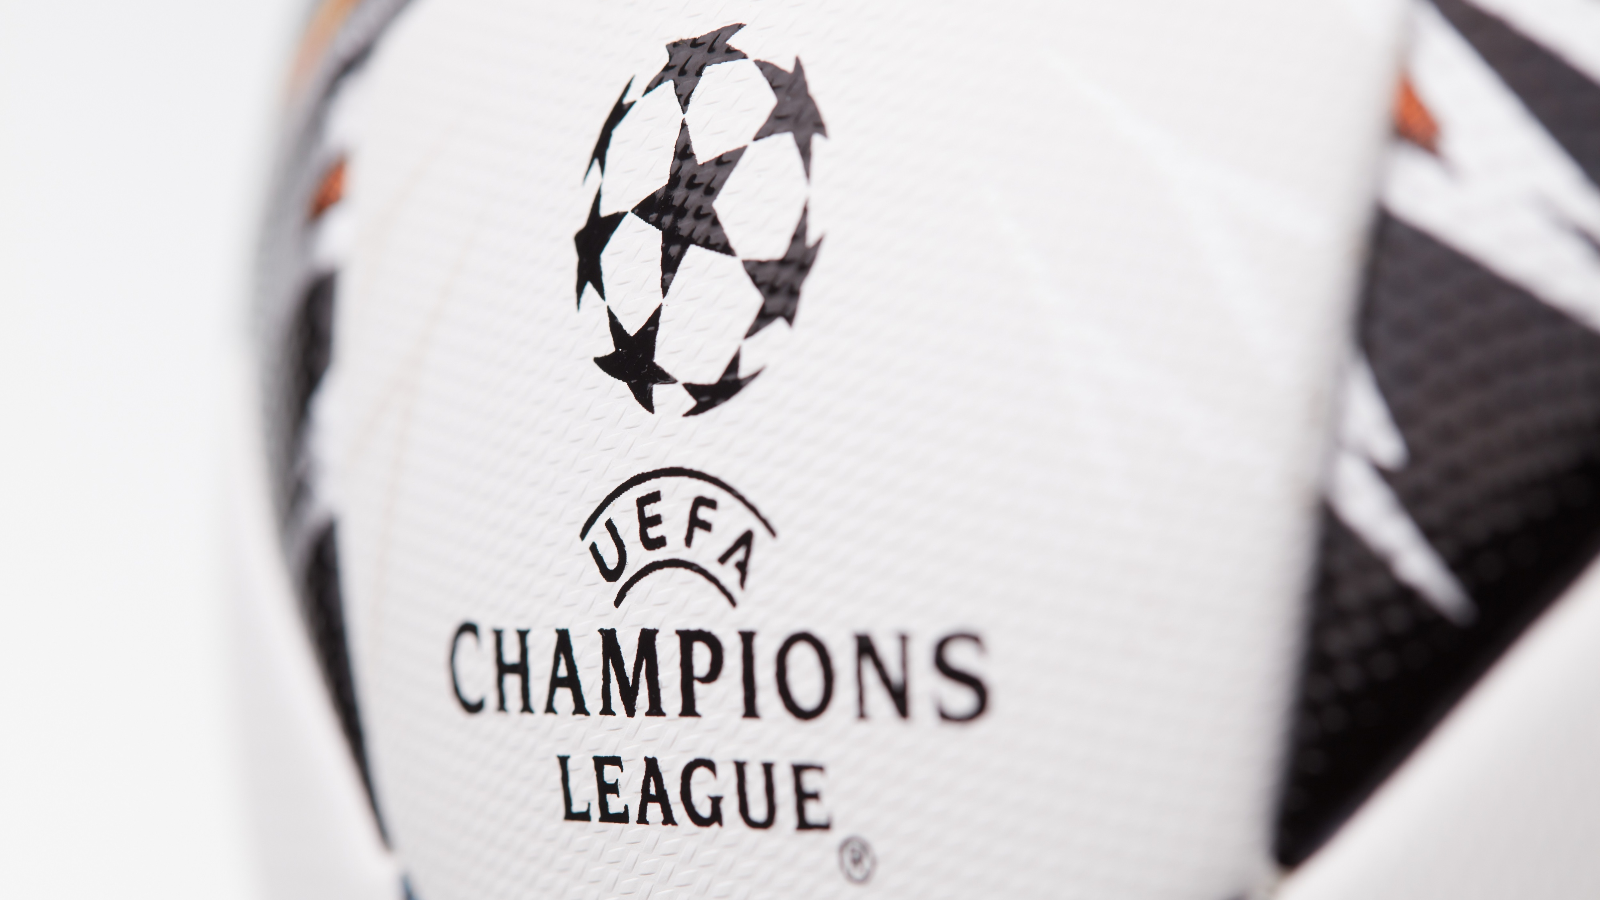 Download Uefa Champions League Logo Png 2020